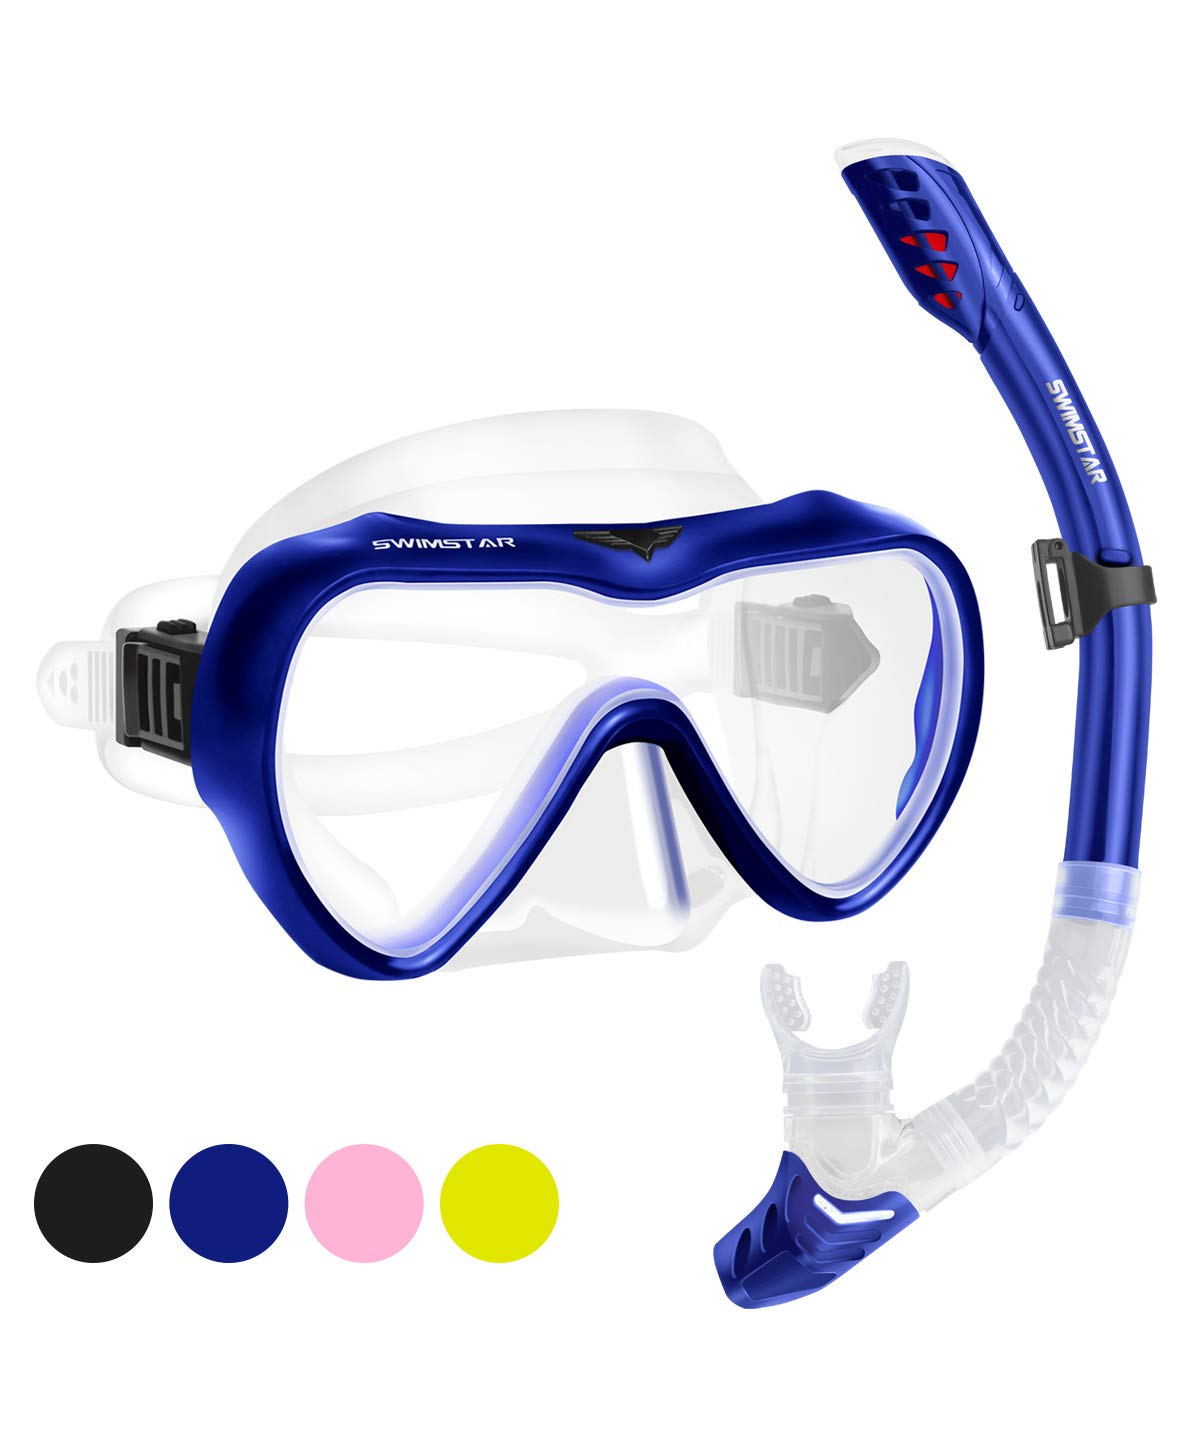 2019 Snorkel Set for Women and Men, Anti-Fog Tempered Glass Snorkel Mask for Snorkeling, Swimming and Scuba Diving, Anti Leak Dry Top Snorkel Gear Panoramic Silicone Goggle No Leak Blue